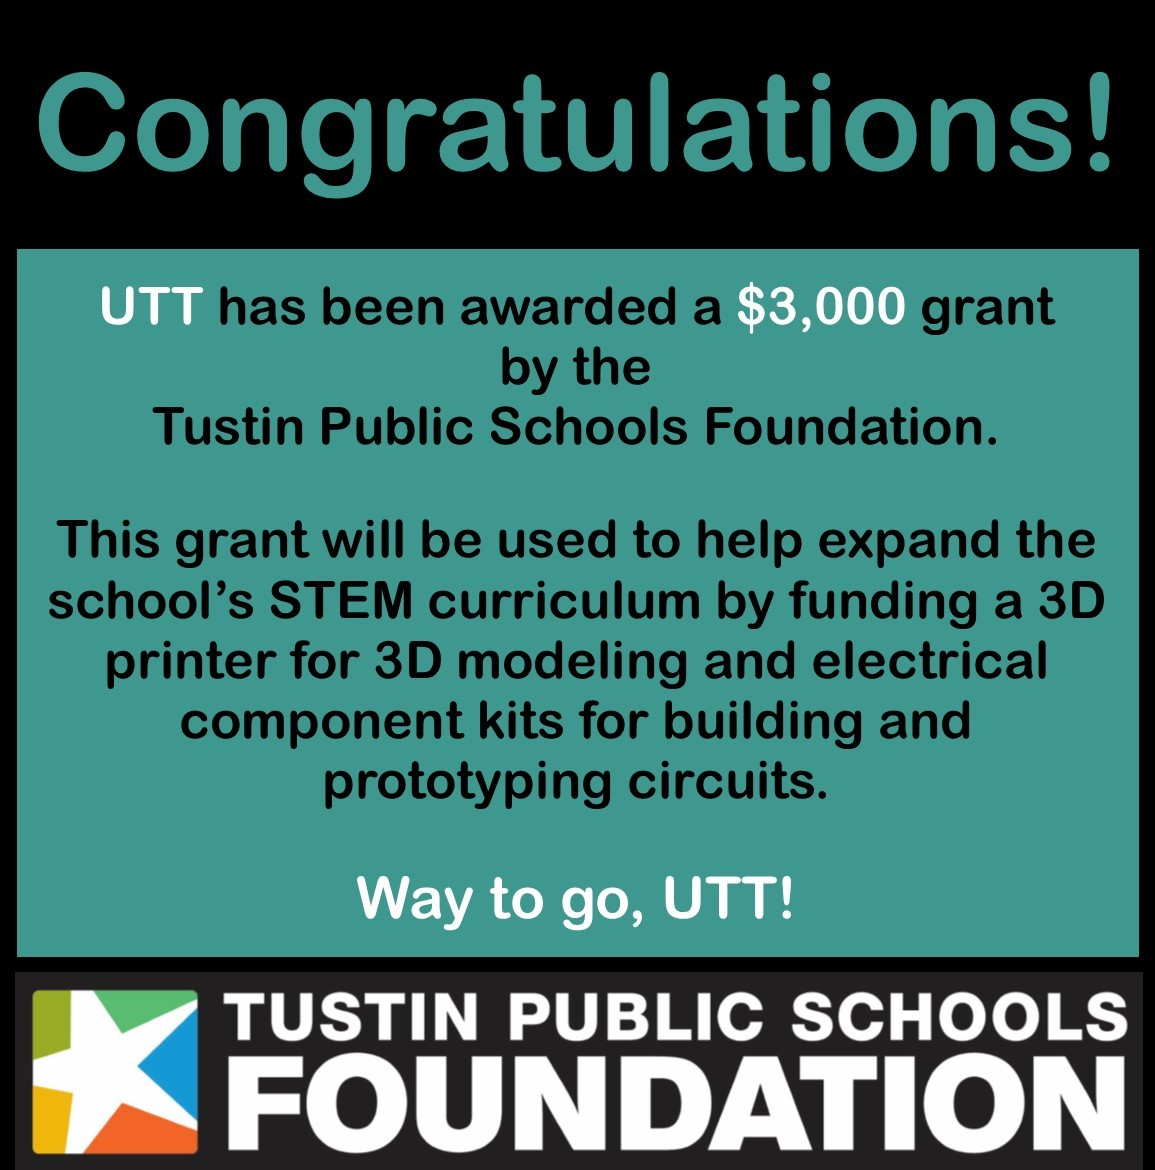 Utt has been awarded a $3,000 grant by the Tustin Public Schools Foundation